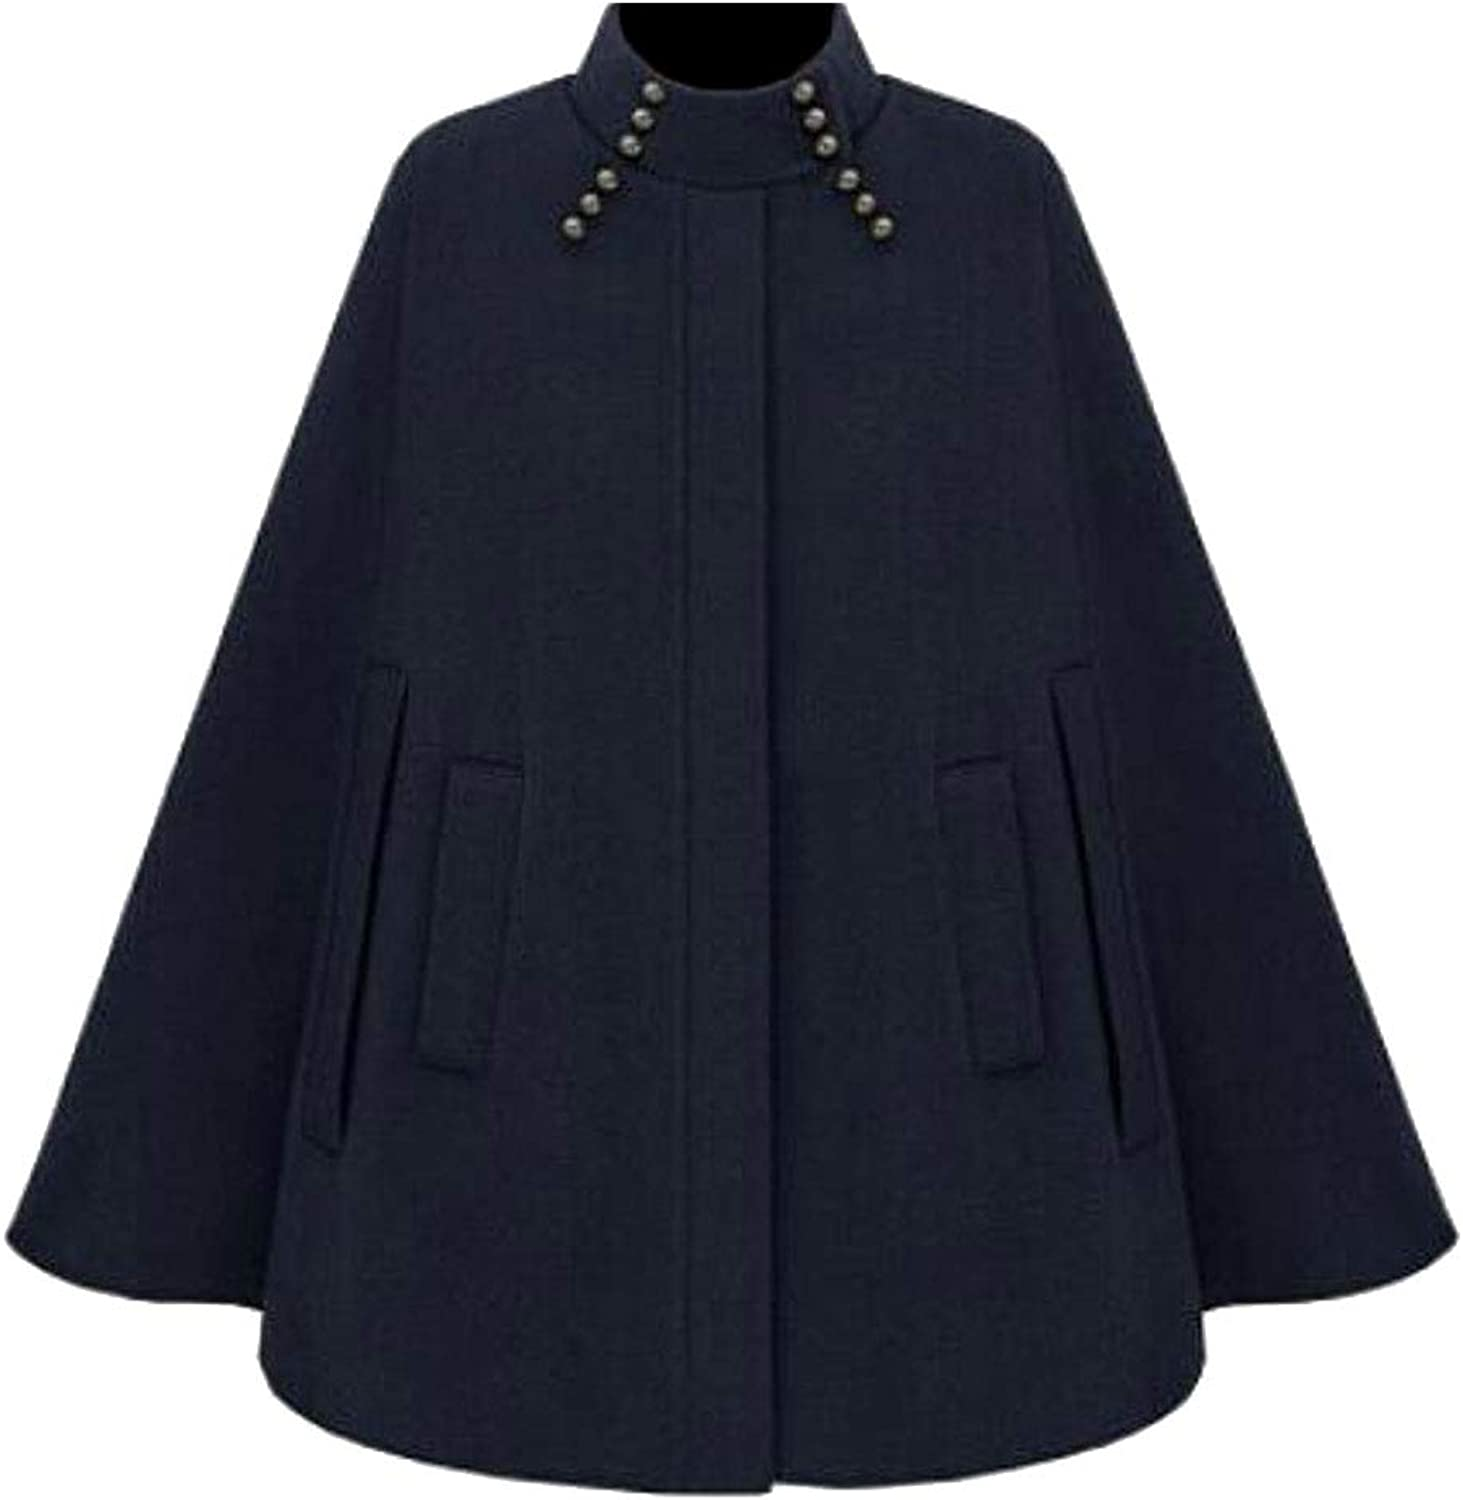 FRPE Women Cape Vintage Overcoat Loose Fit Stand Collar Cloak Pea Coat